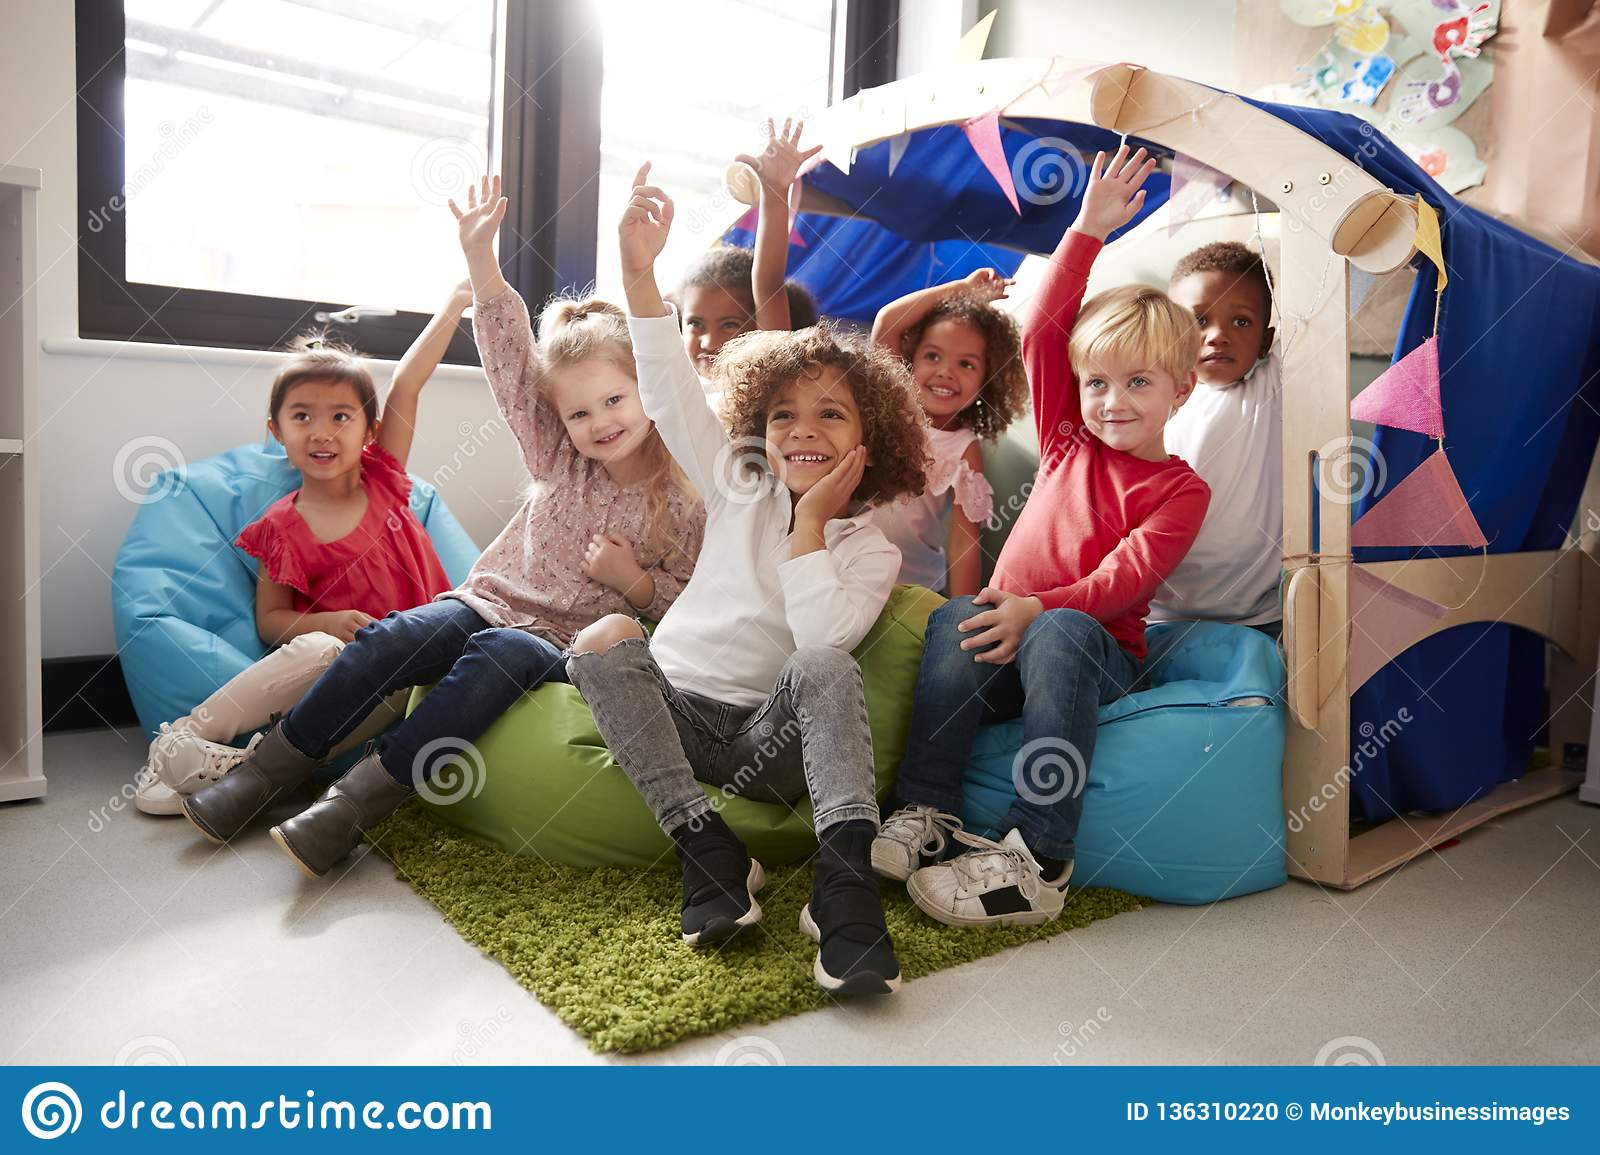 A multi-ethnic group of infant school children sitting on bean bags in a comfortable corner of the classroom, raising their hands